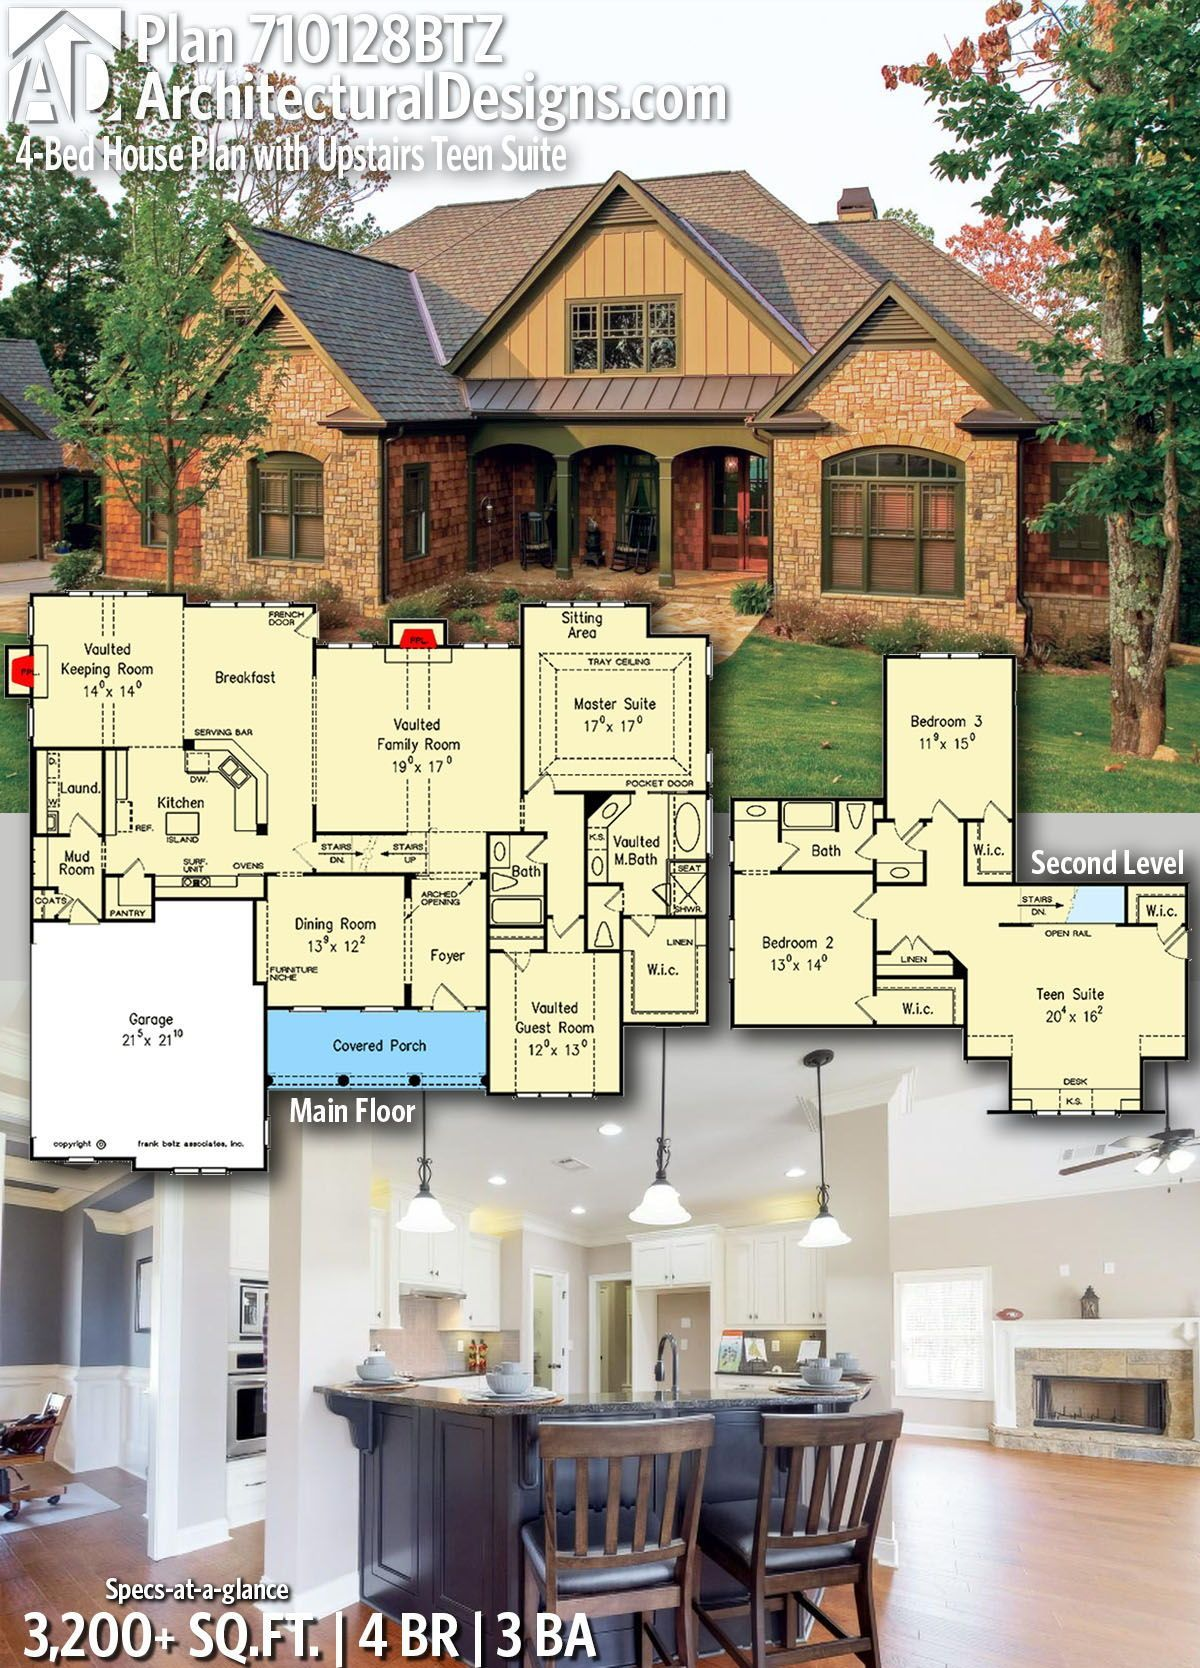 Photo of Plan 710128BTZ: 4-Bed House Plan with Upstairs Teen Suite